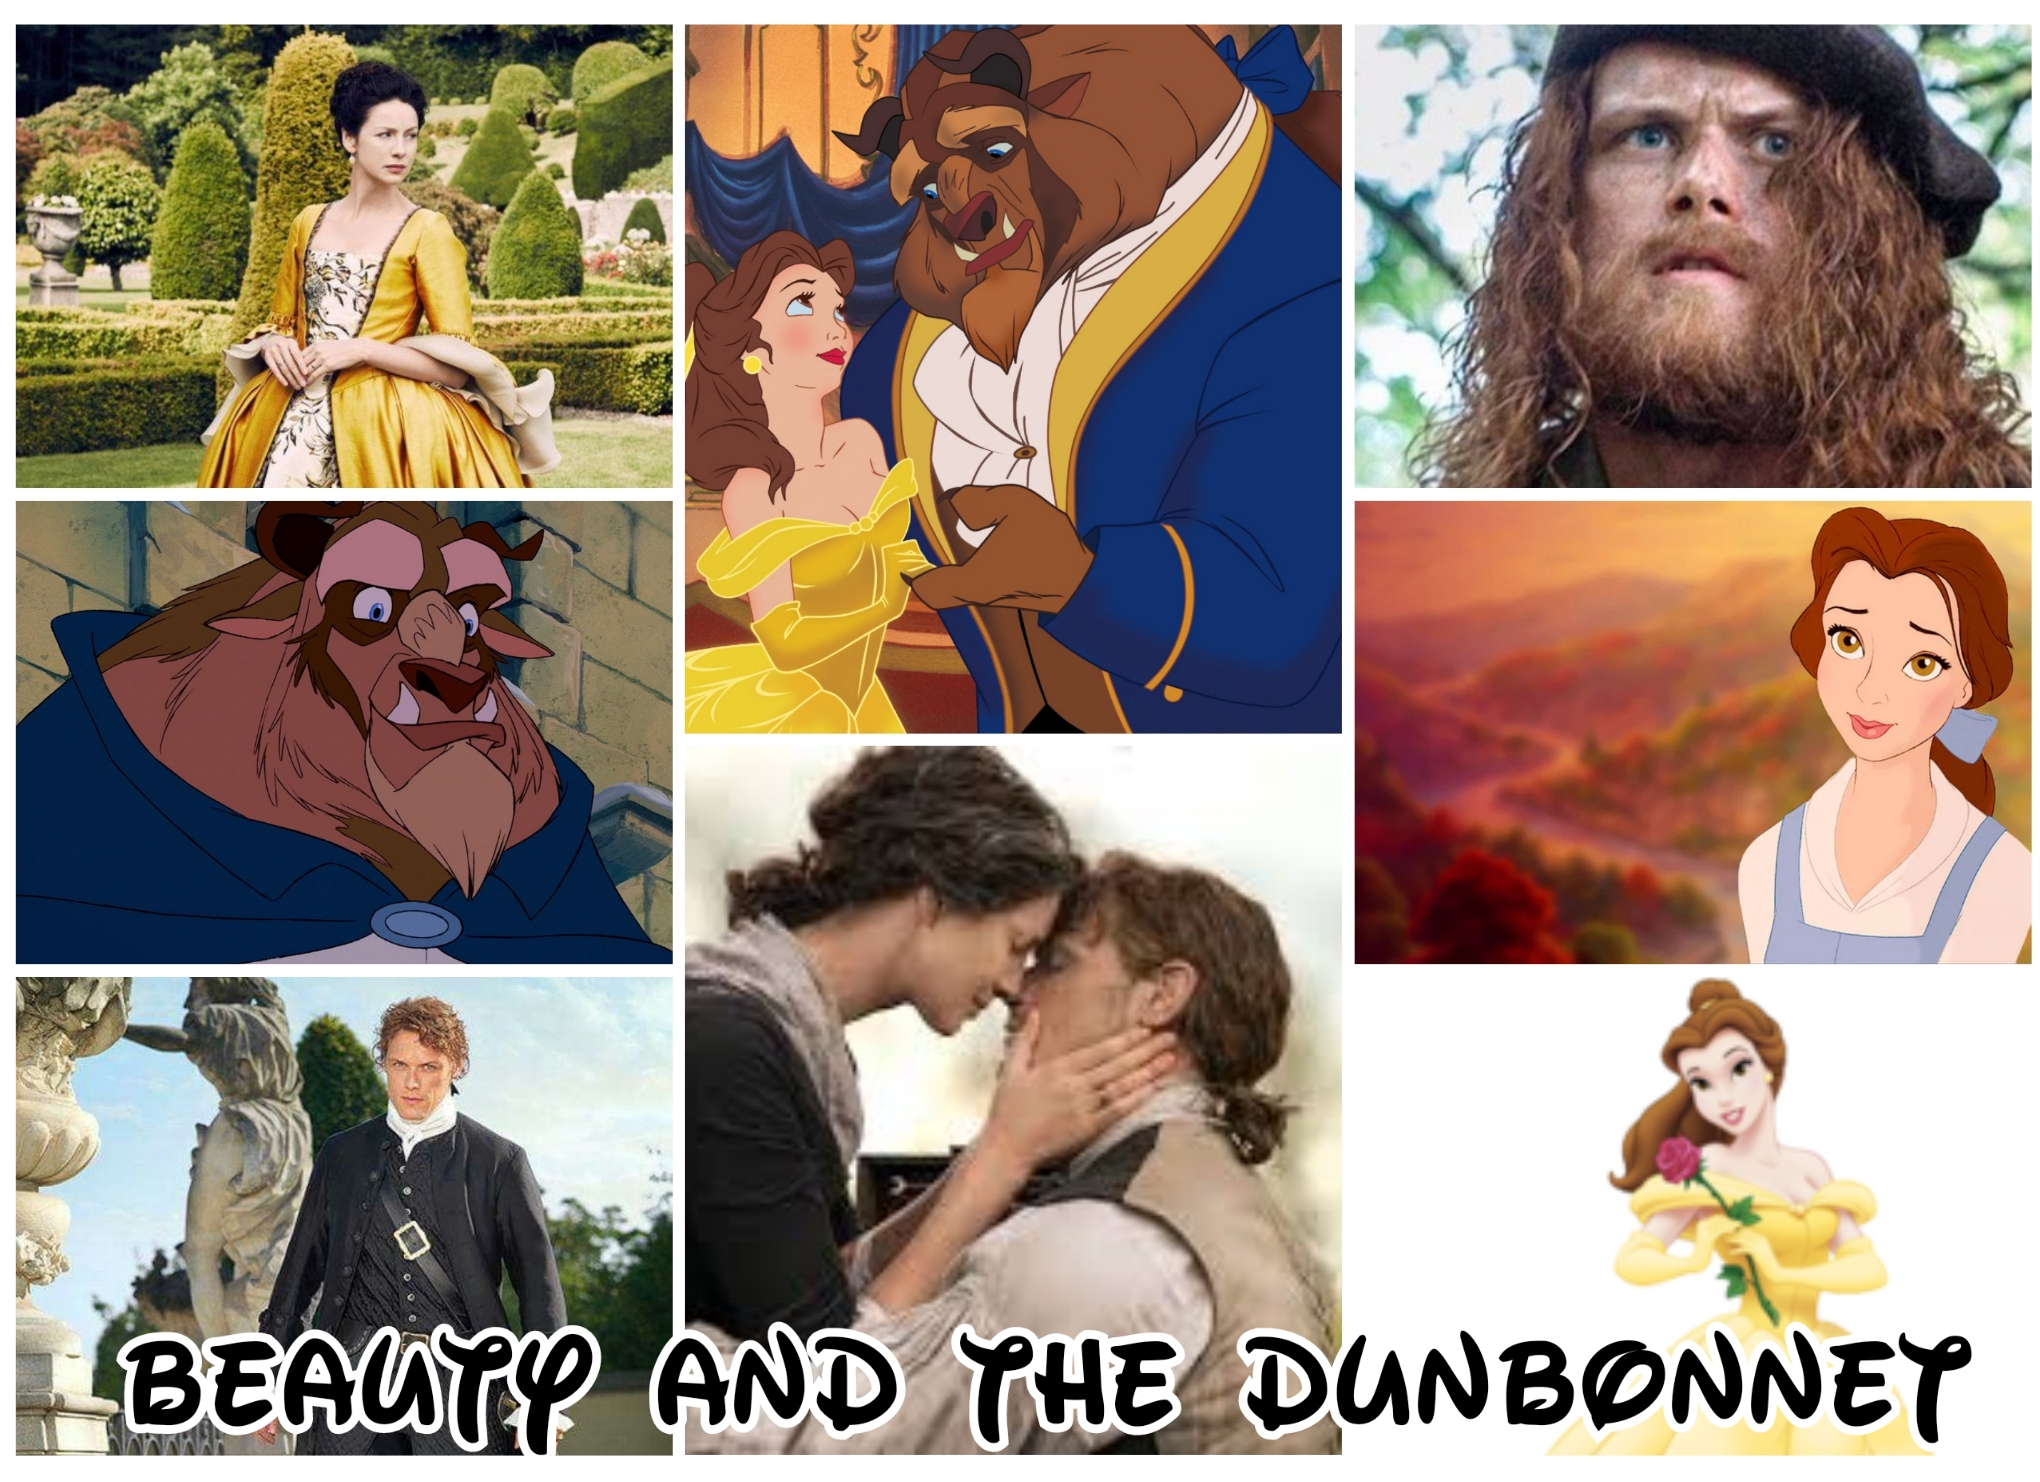 Beauty-and-the-Dunbonnet